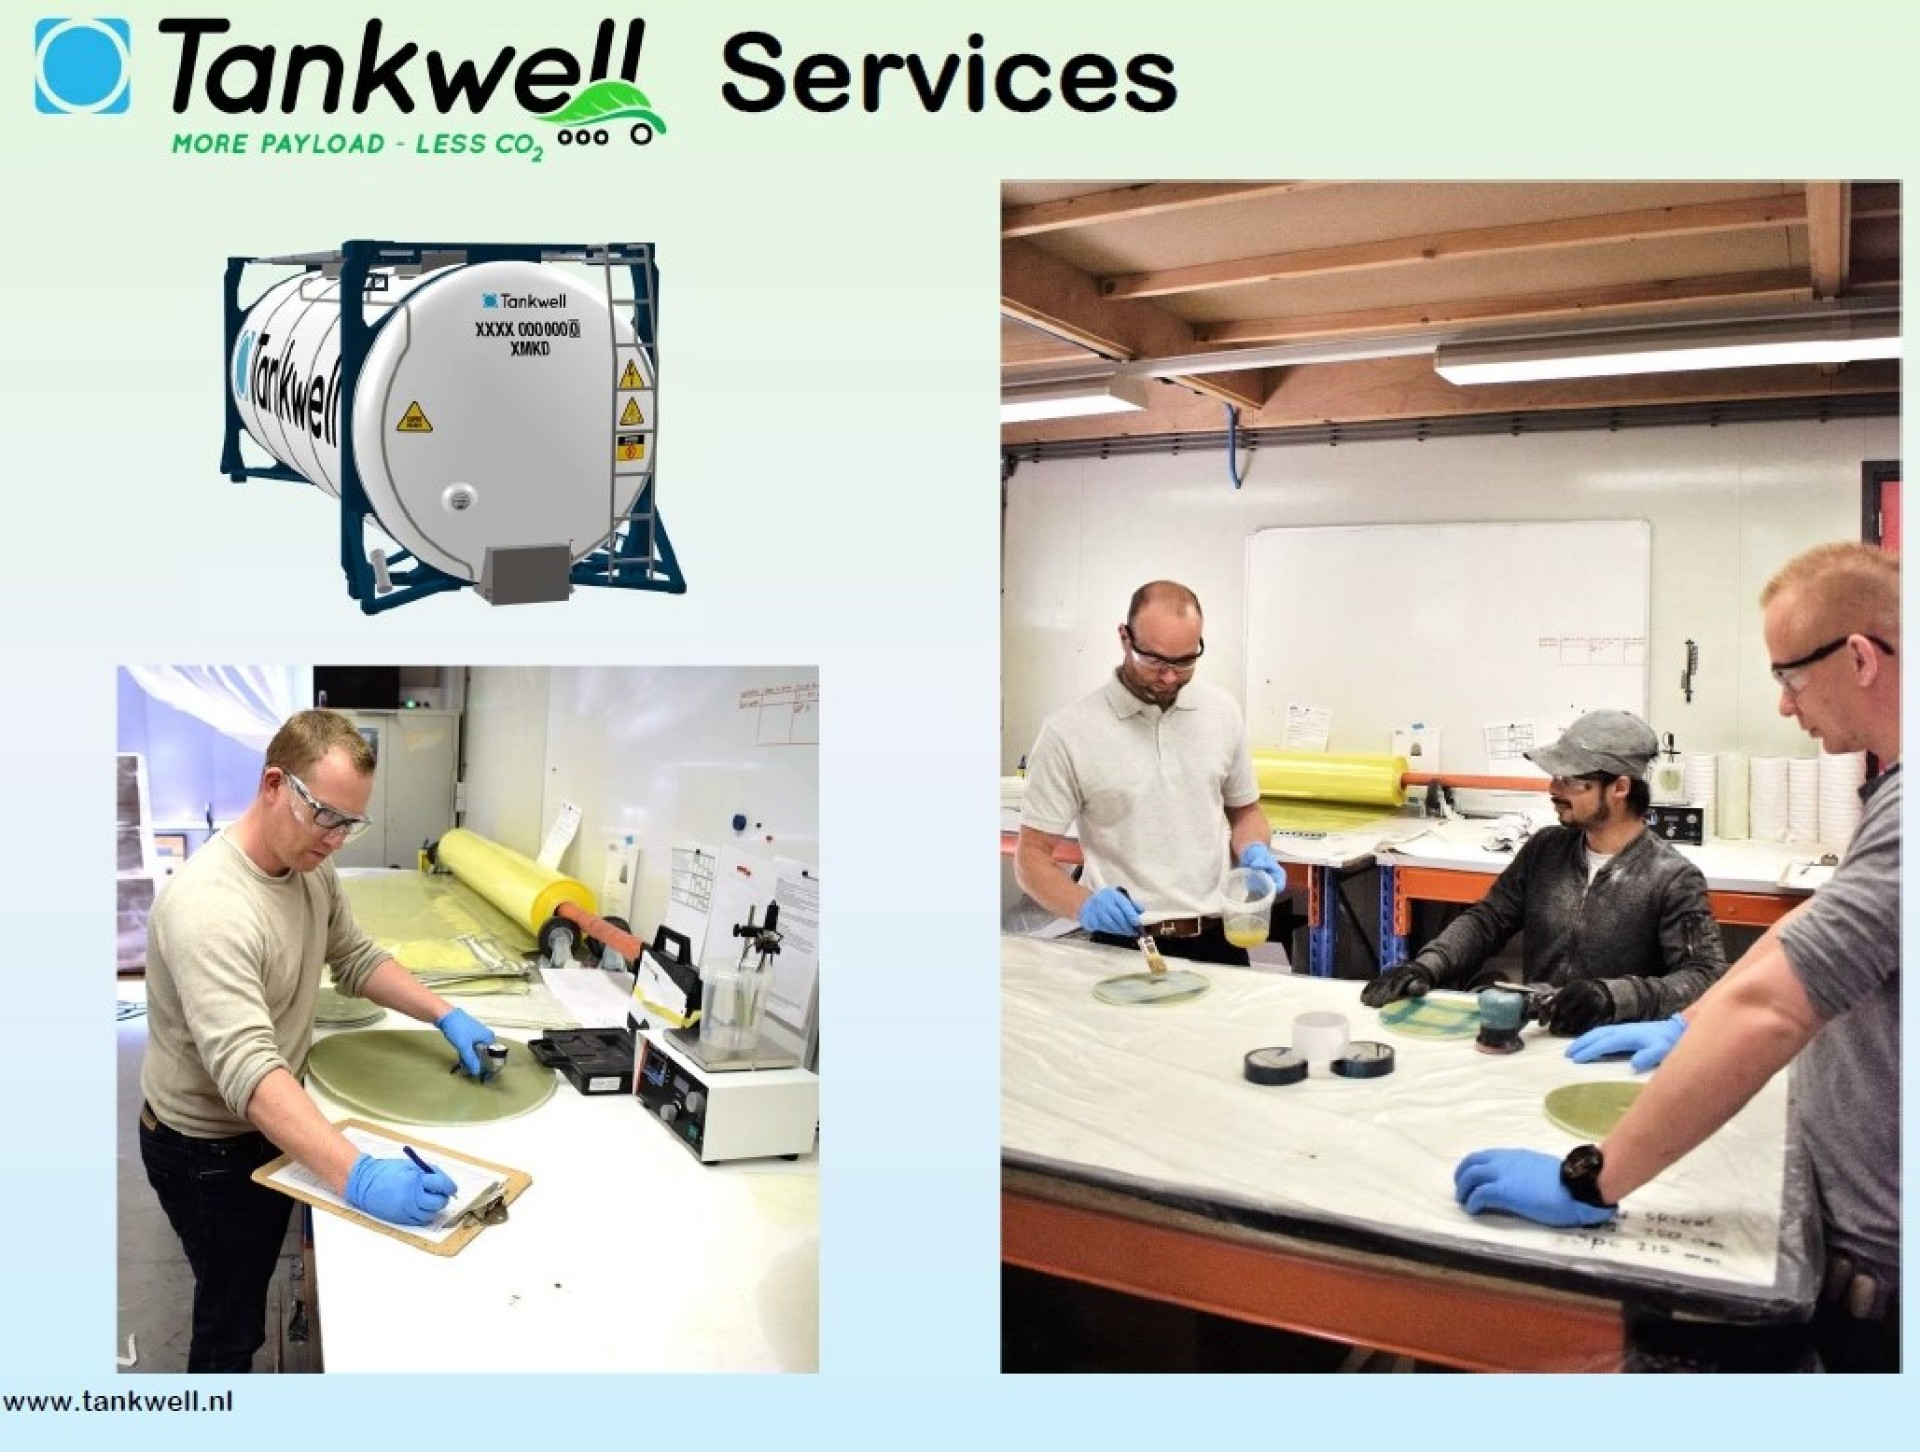 Tankwell Services